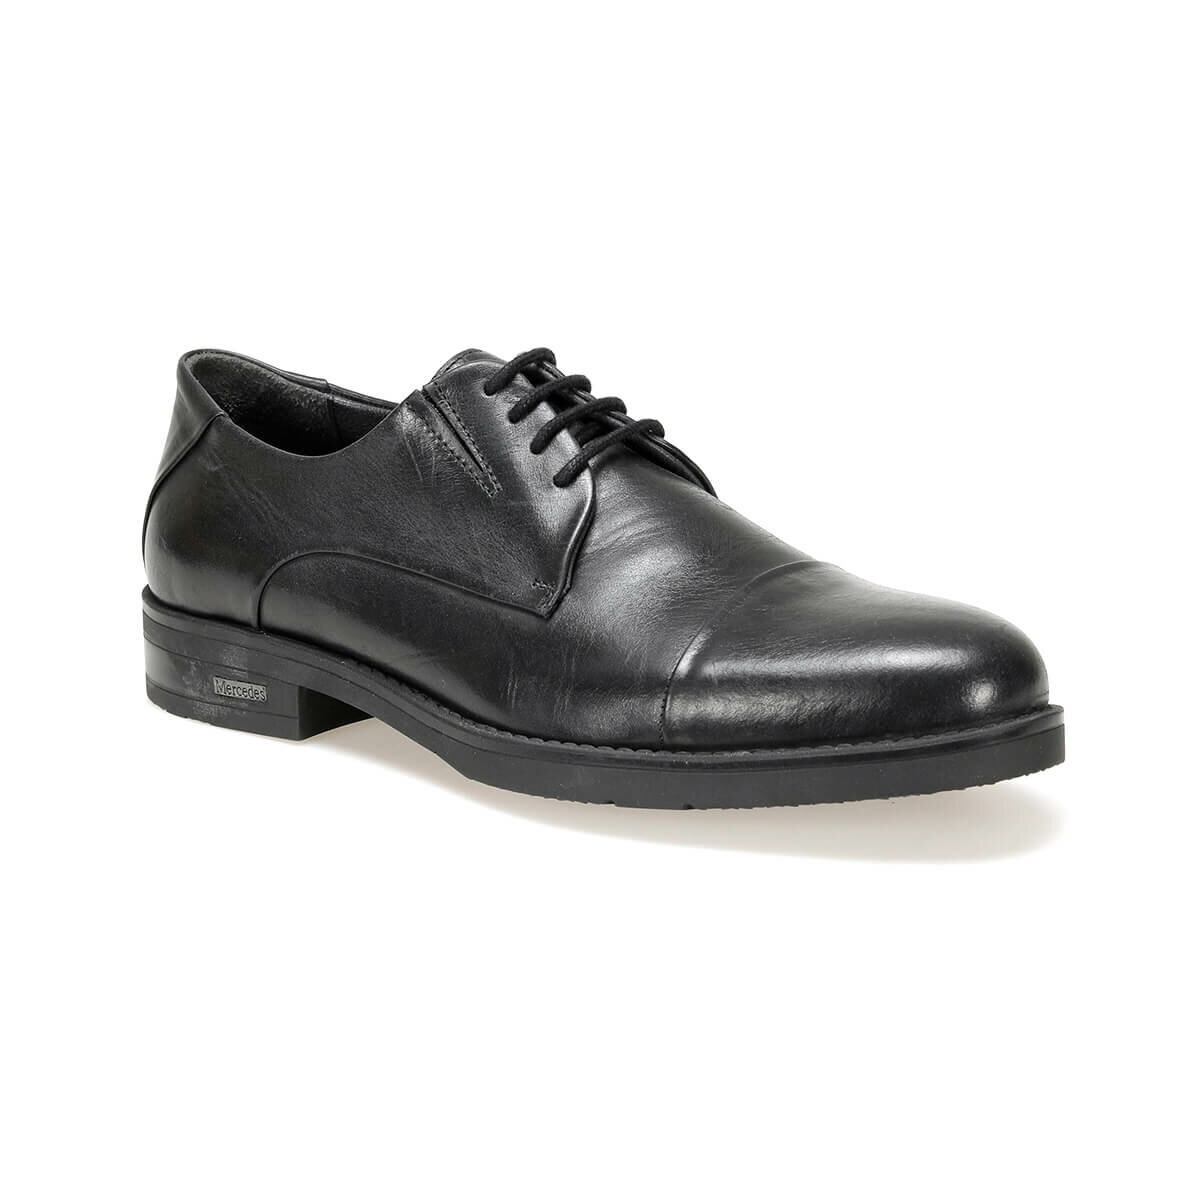 FLO HOLMES 9PR Black Men 'S Classic Shoes MERCEDES